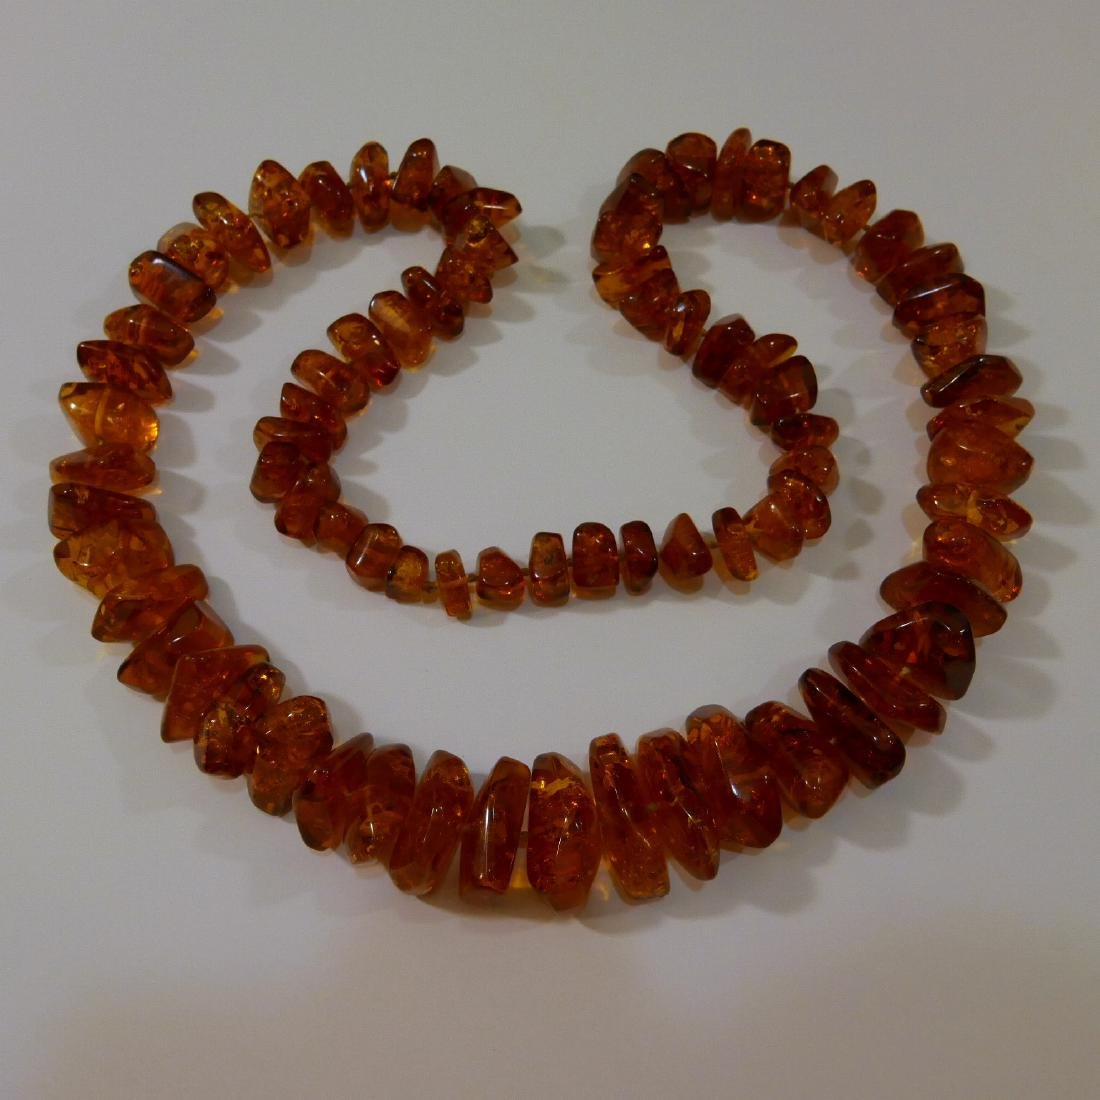 NATURAL AMBER NECKLACE - 94 GRAMS